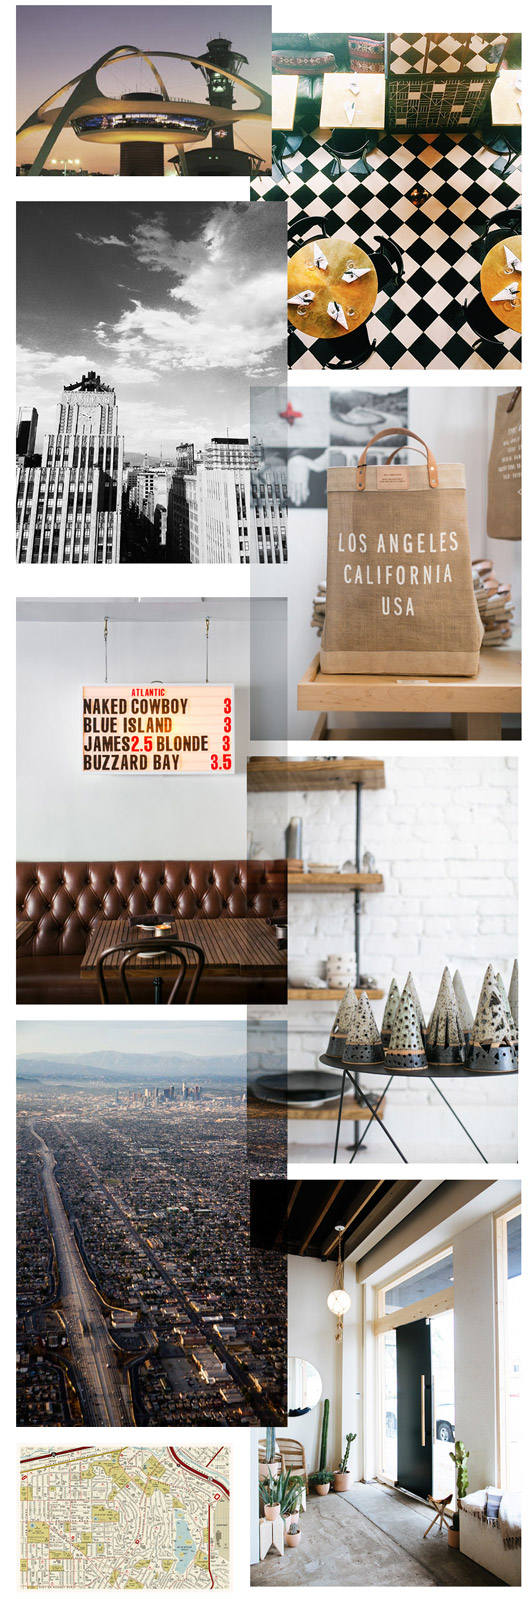 los angeles landmarks and specialty stores. / sfgirlbybay